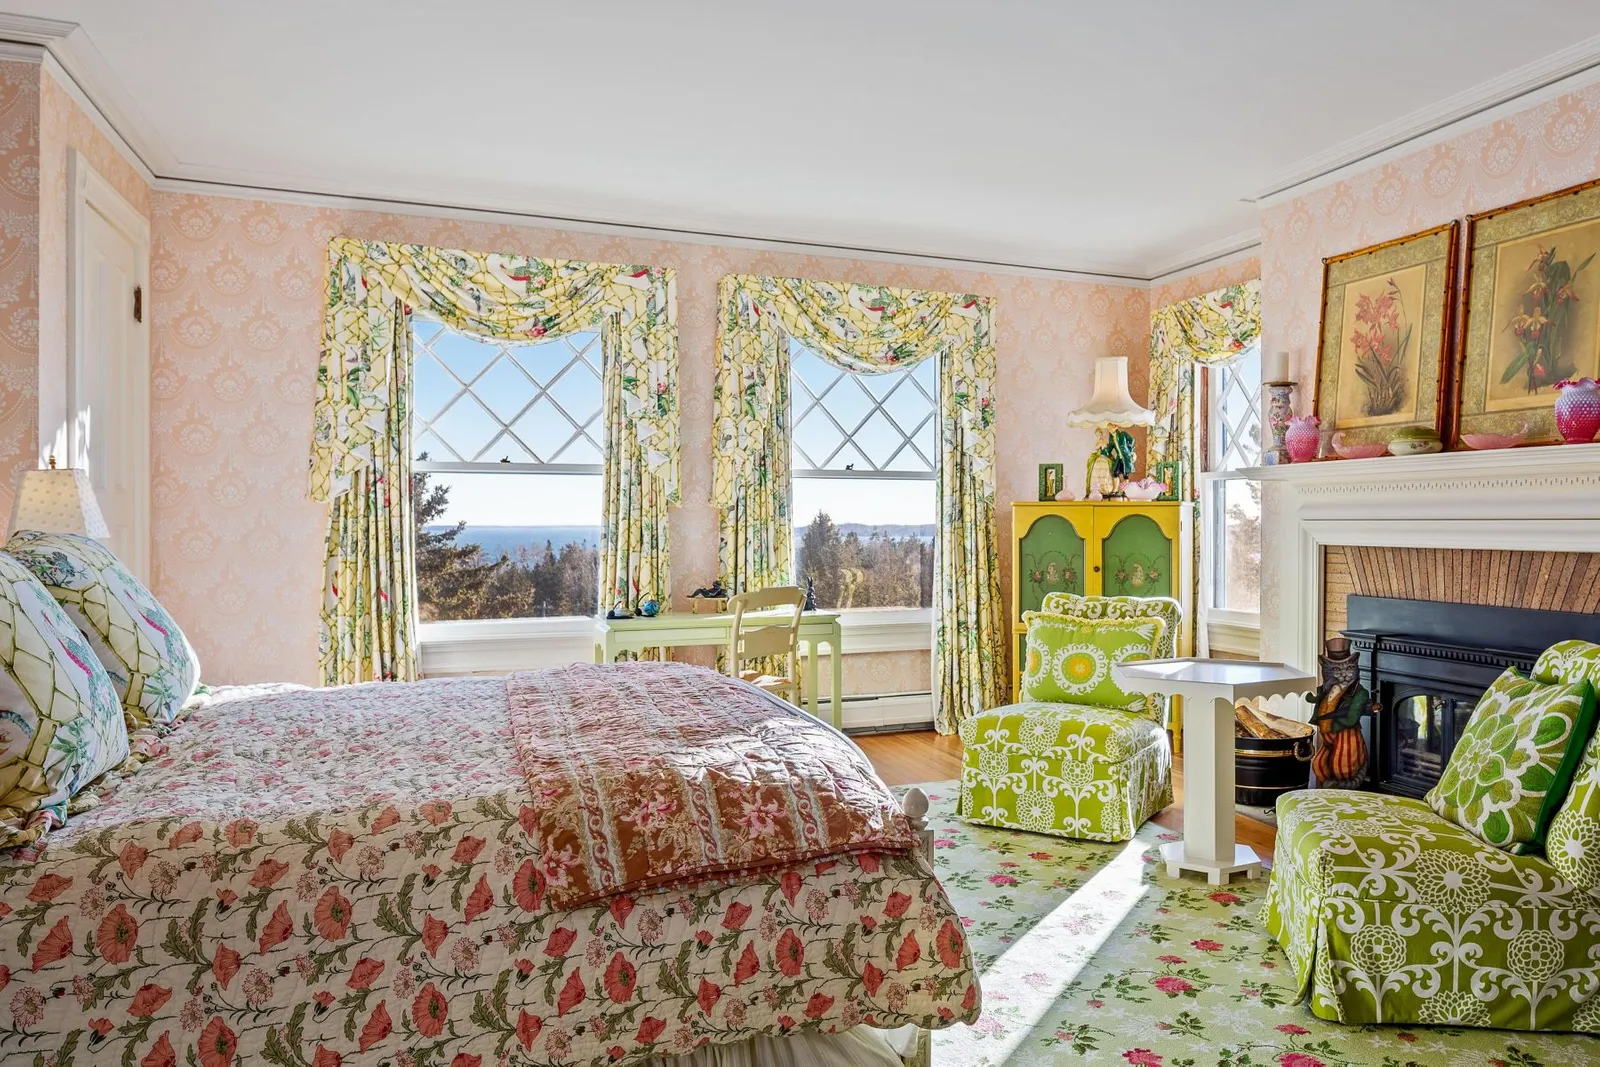 Inspirational bedroom decorating ideas. John Travolta home in Maine on the market.